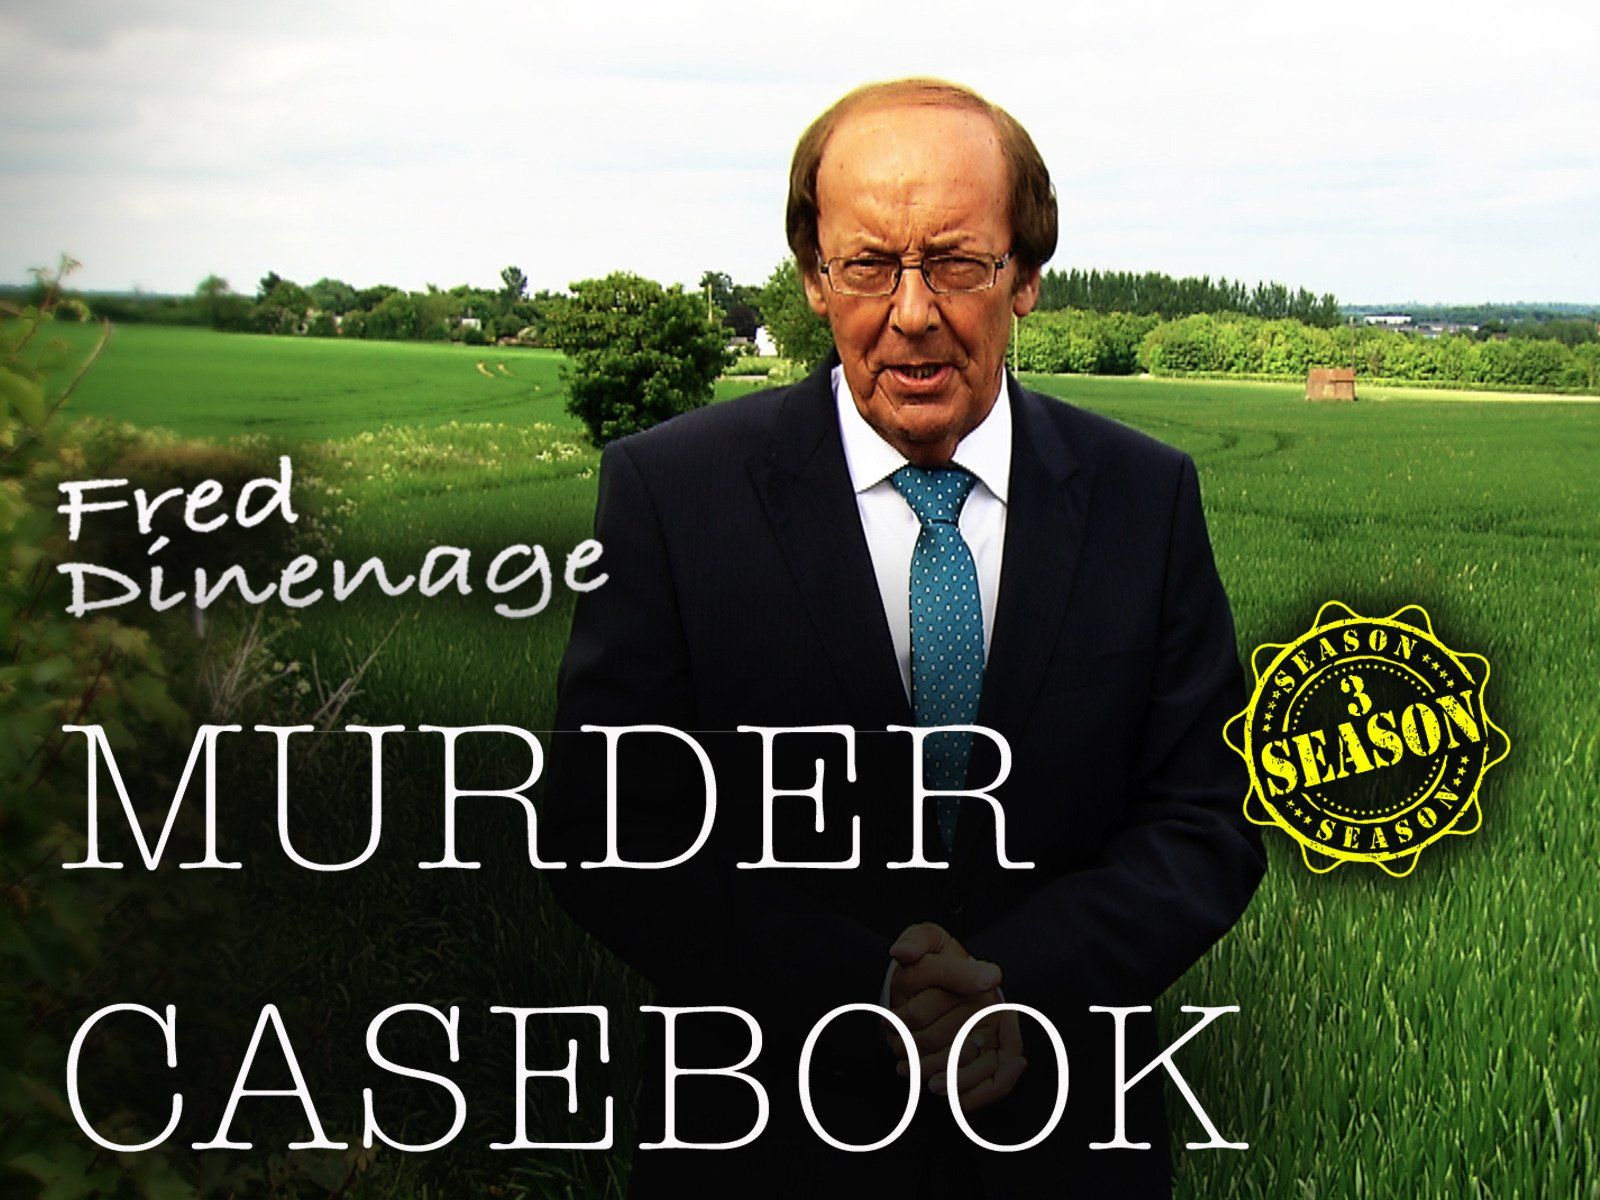 Fred Dinenage Murder Casebook - Season 3